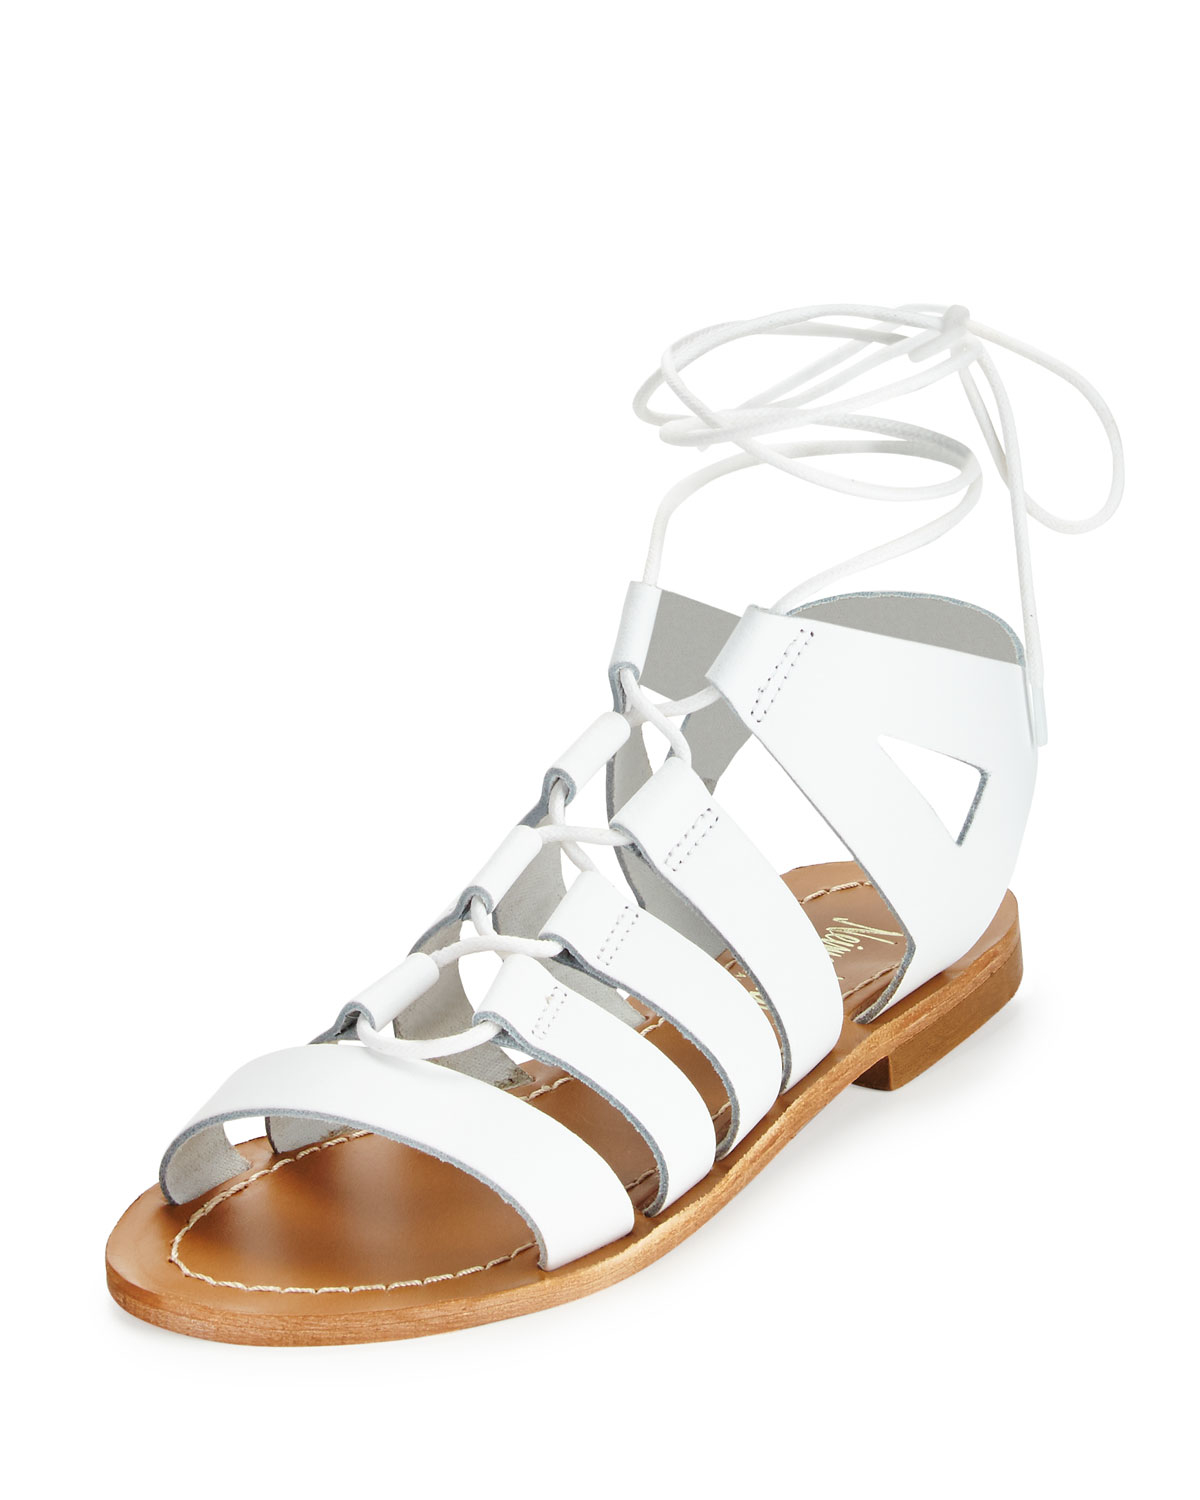 Lyst - Neiman marcus Amorie Leather Lace-up Sandal in White